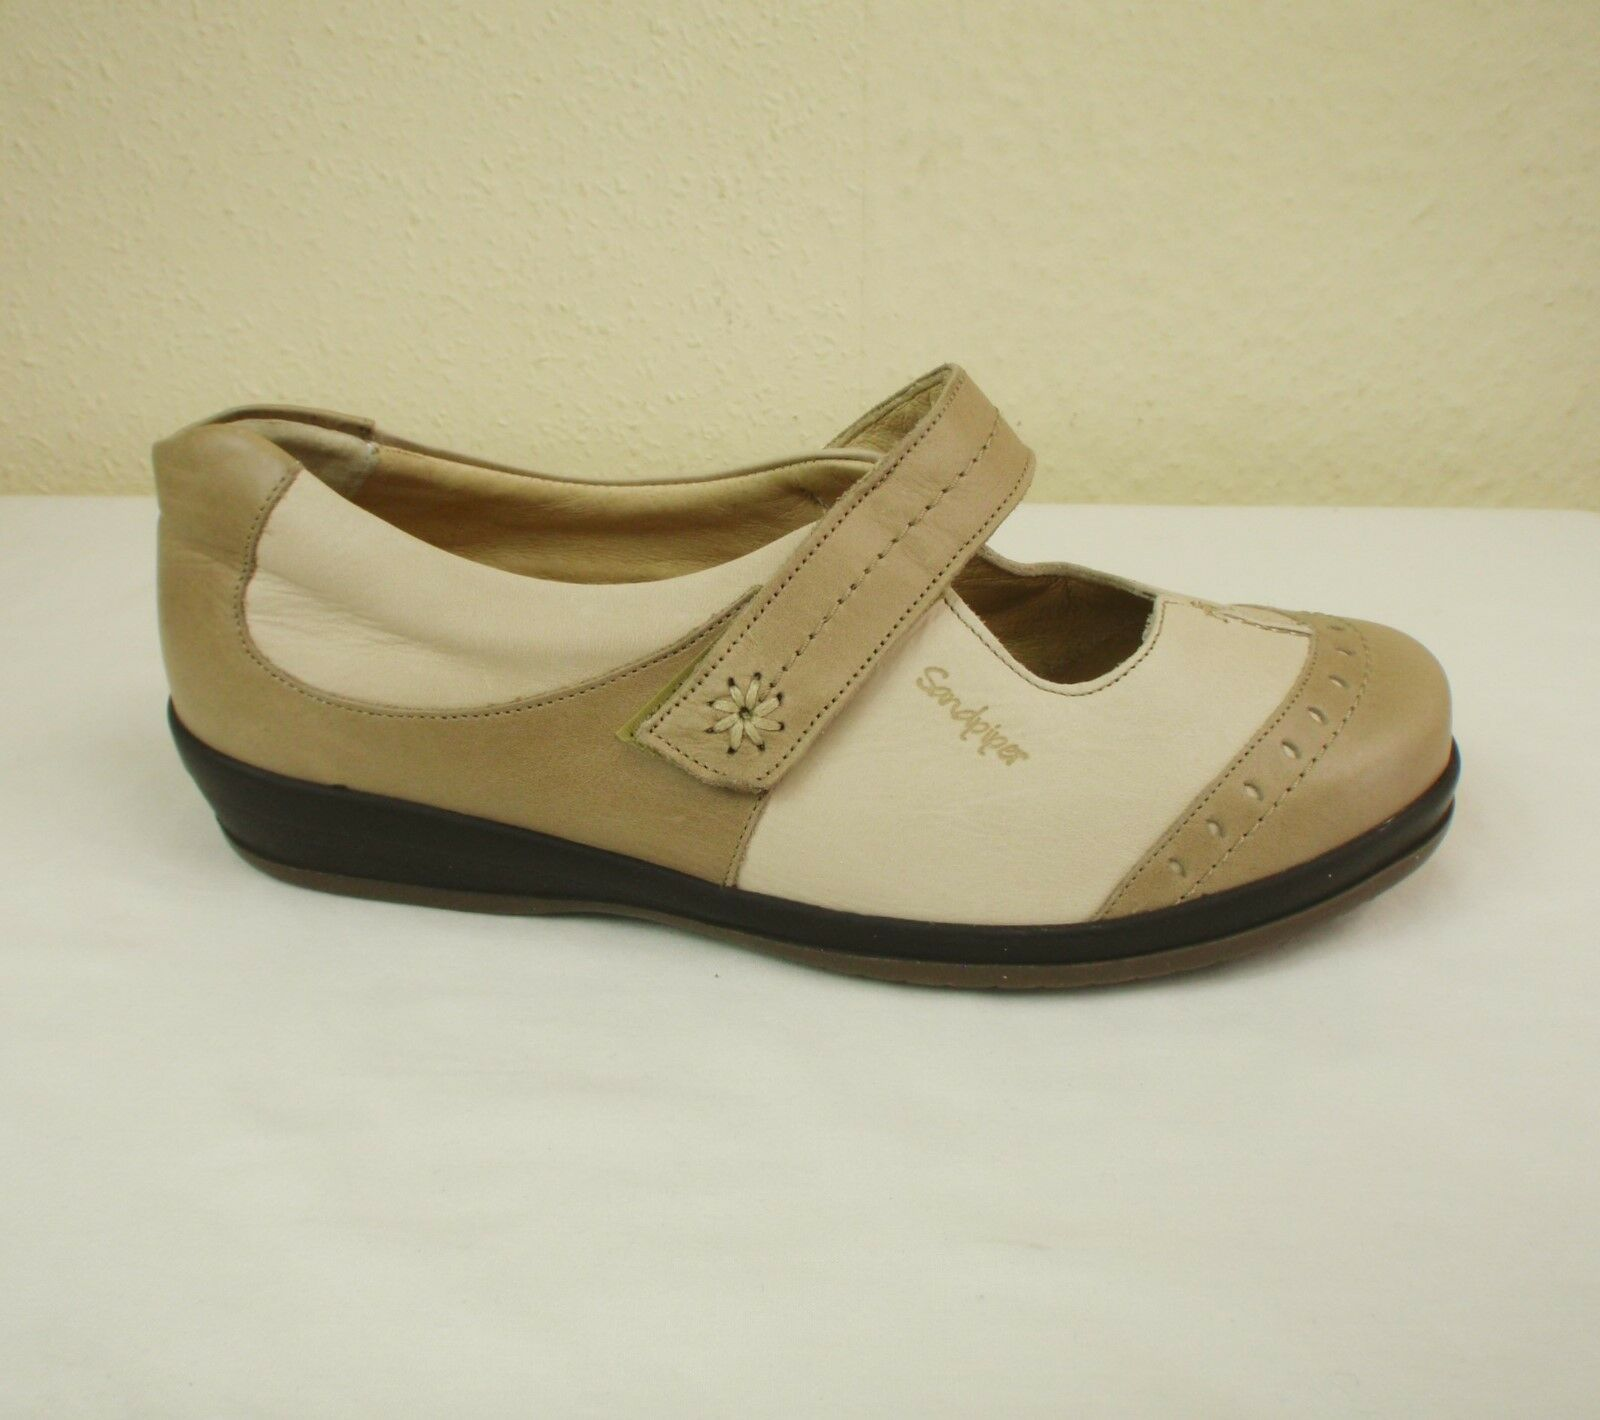 Sandpiper 'Filton' Sz 41 UK 7 Extra Wide Shoe Leather Mary Jane Flat Shoe Wide Beige Cream 2a9a6b